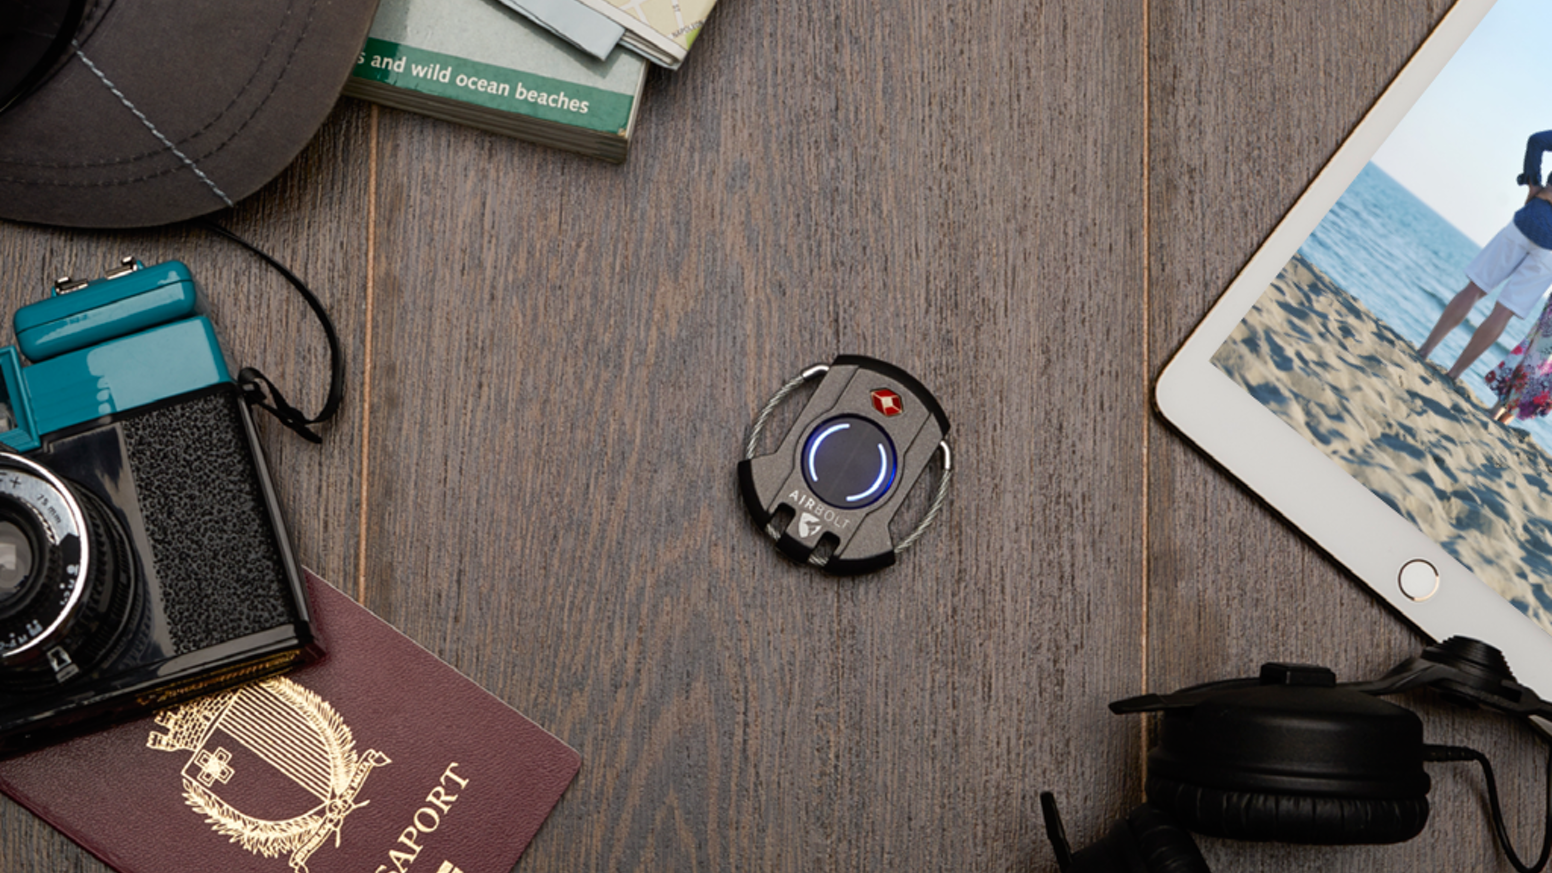 This is not the first smart lock for your luggage. This is the first true lock for your luggage.